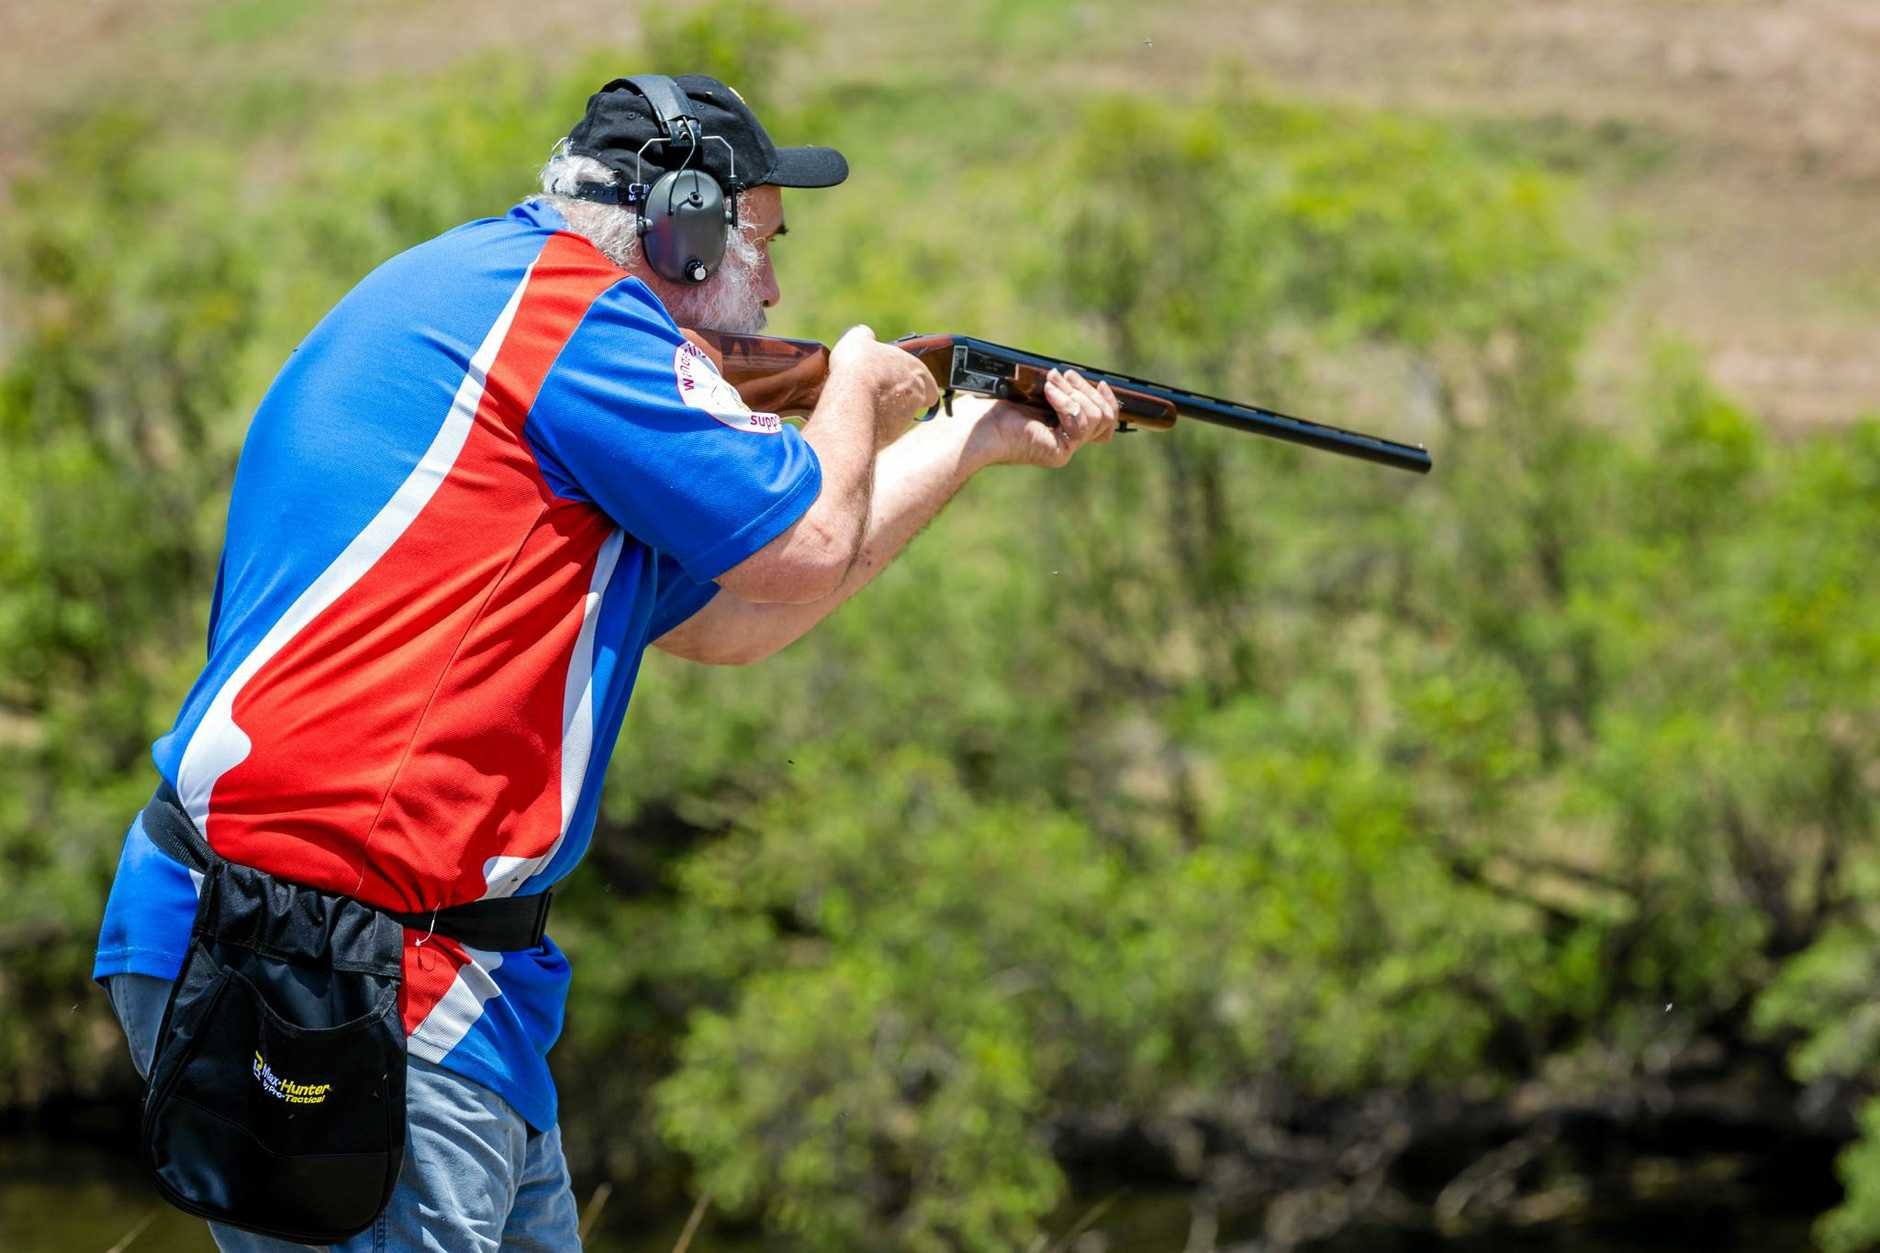 IN THE GUN: The LNP is in the firing line on planned new laws to ban the Adler lever action shotgun, according to Ron Owen.